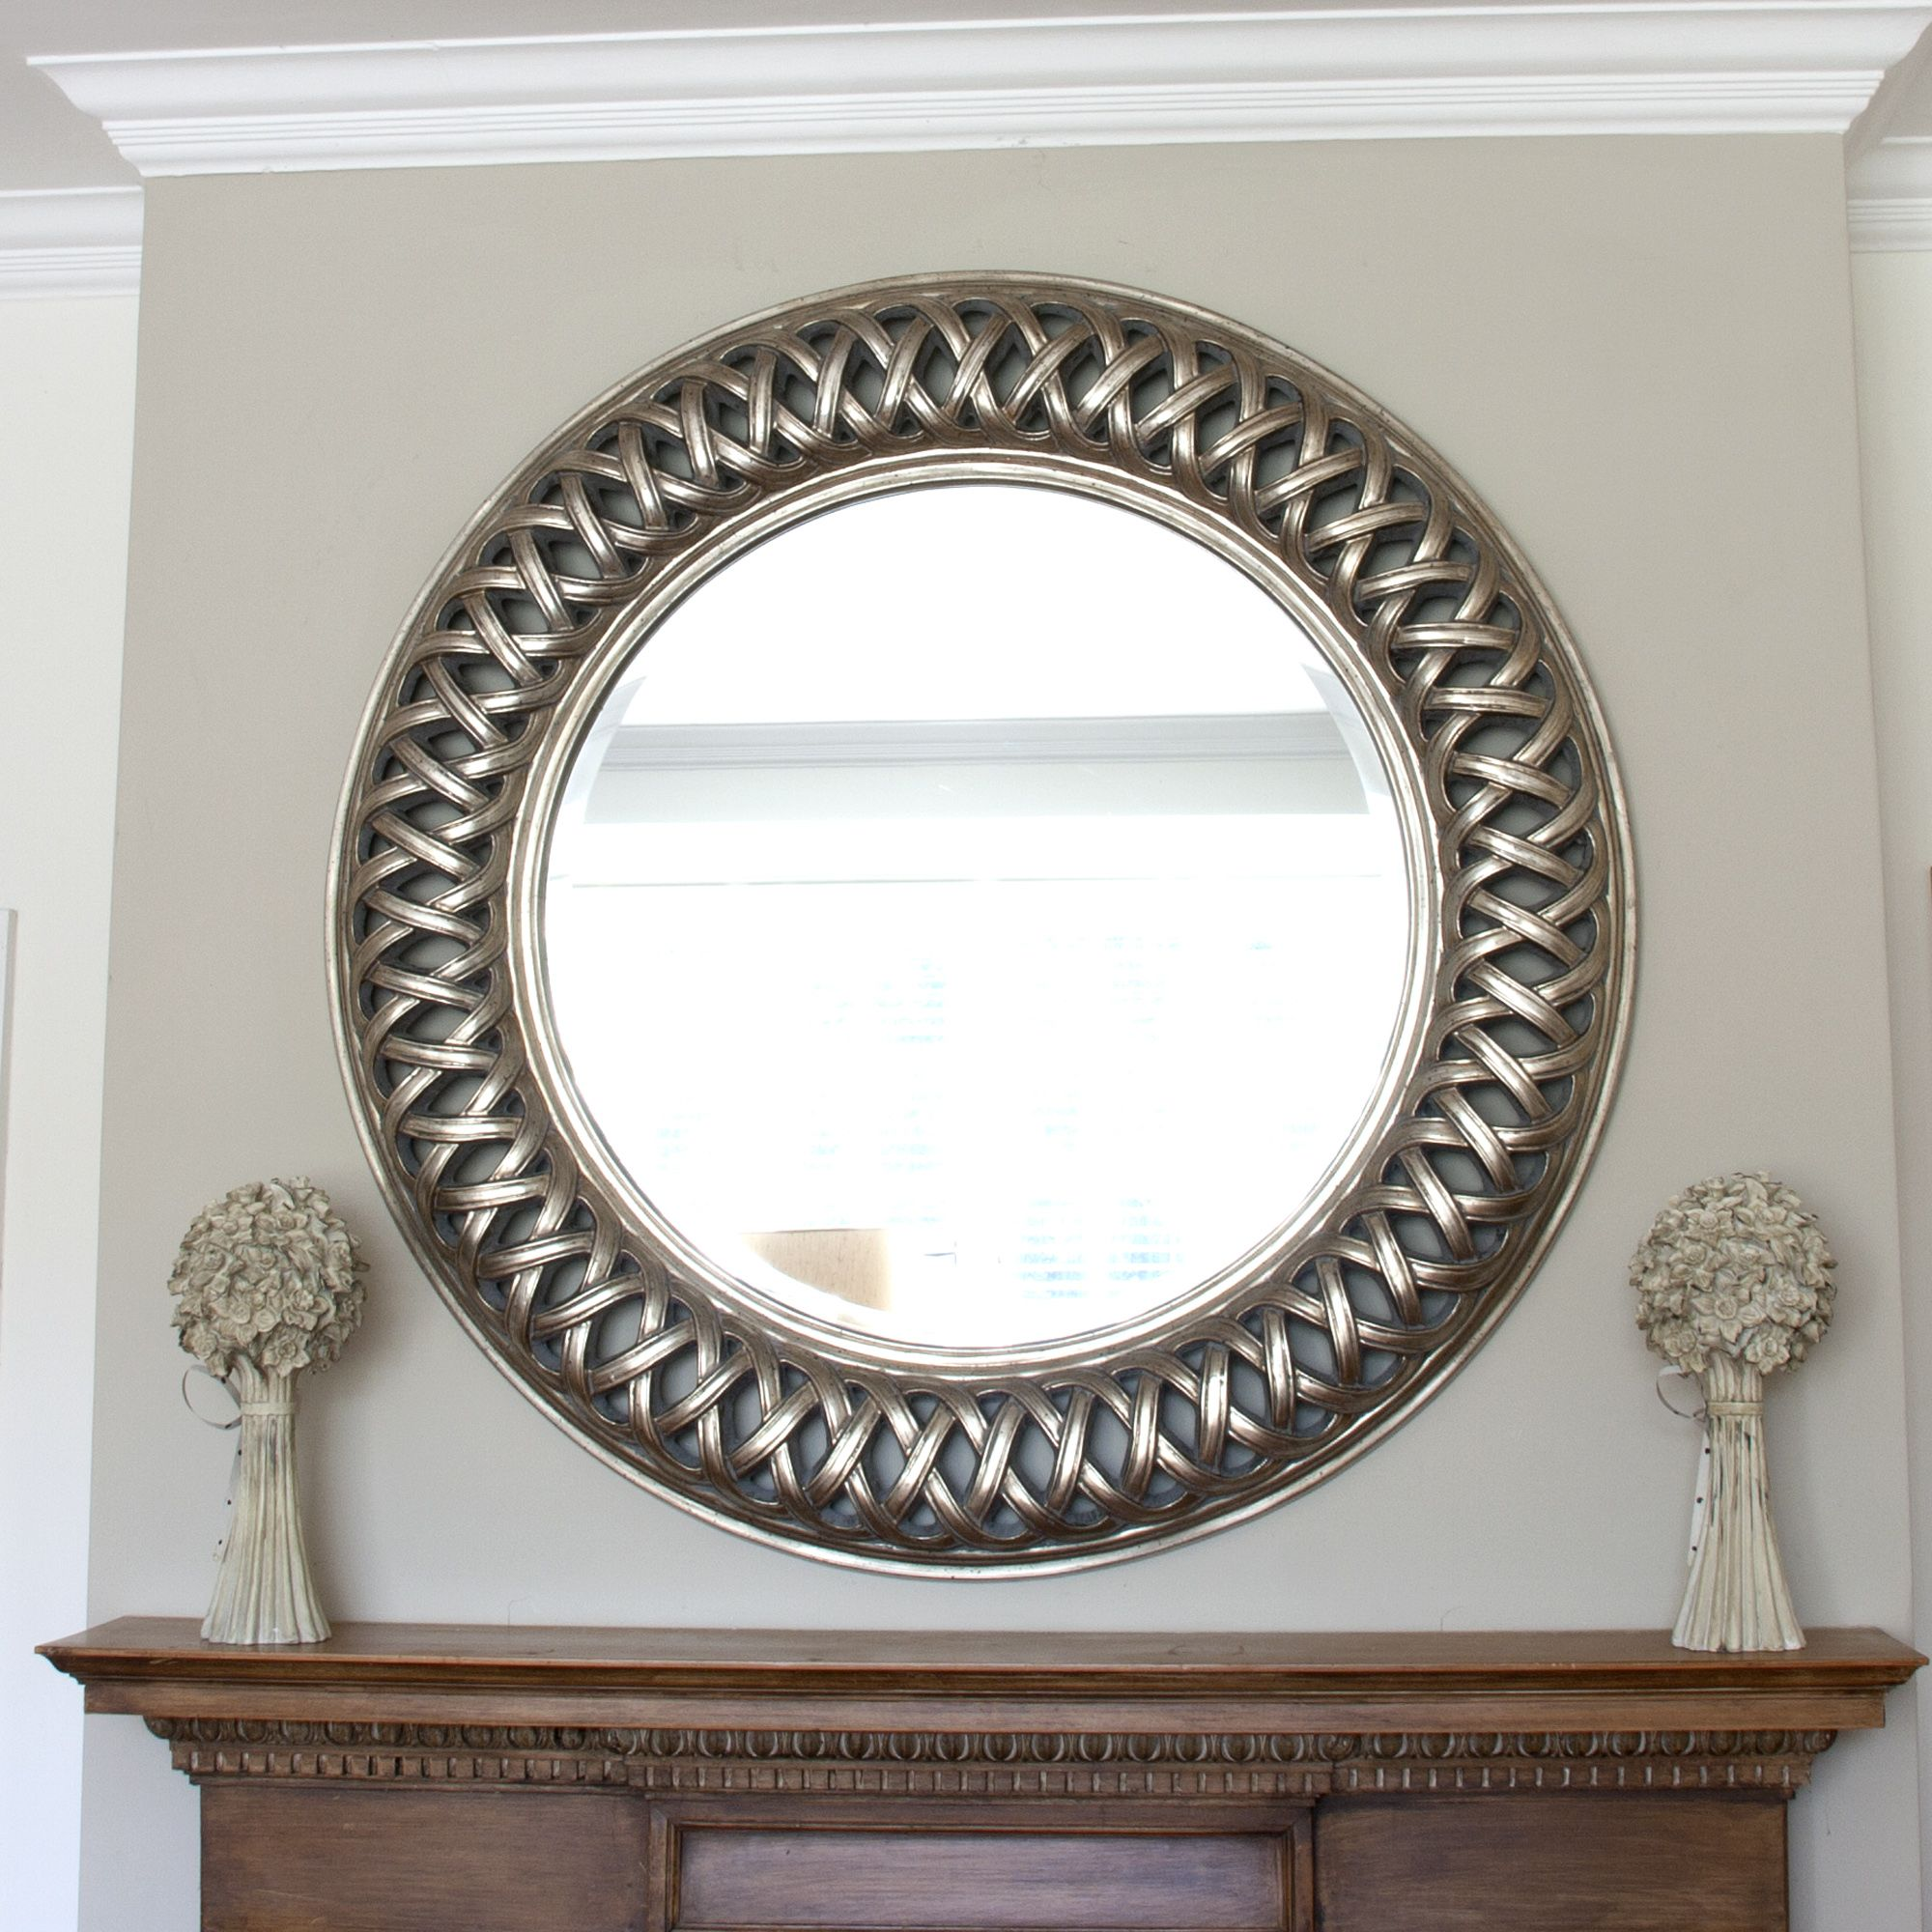 Grand Champagne Silver Weave Round Mirror | Mirror ideas | Pinterest ...